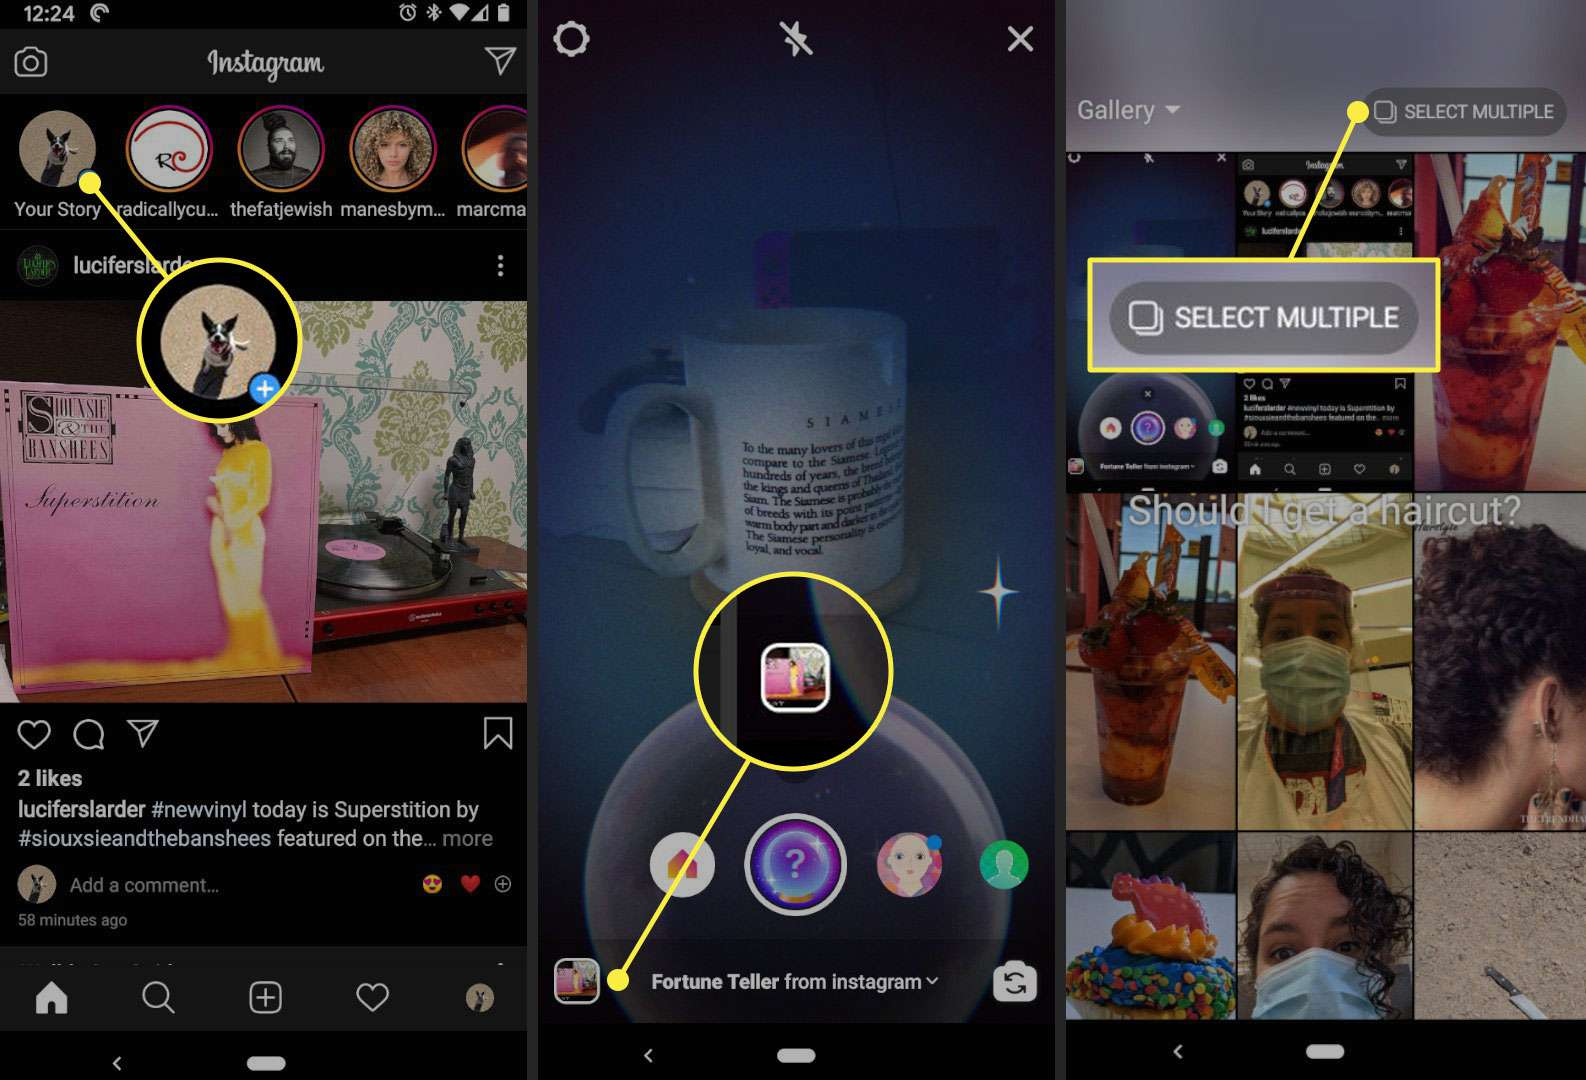 The Your Story, Gallery, and Select Multiple buttons in Instagram